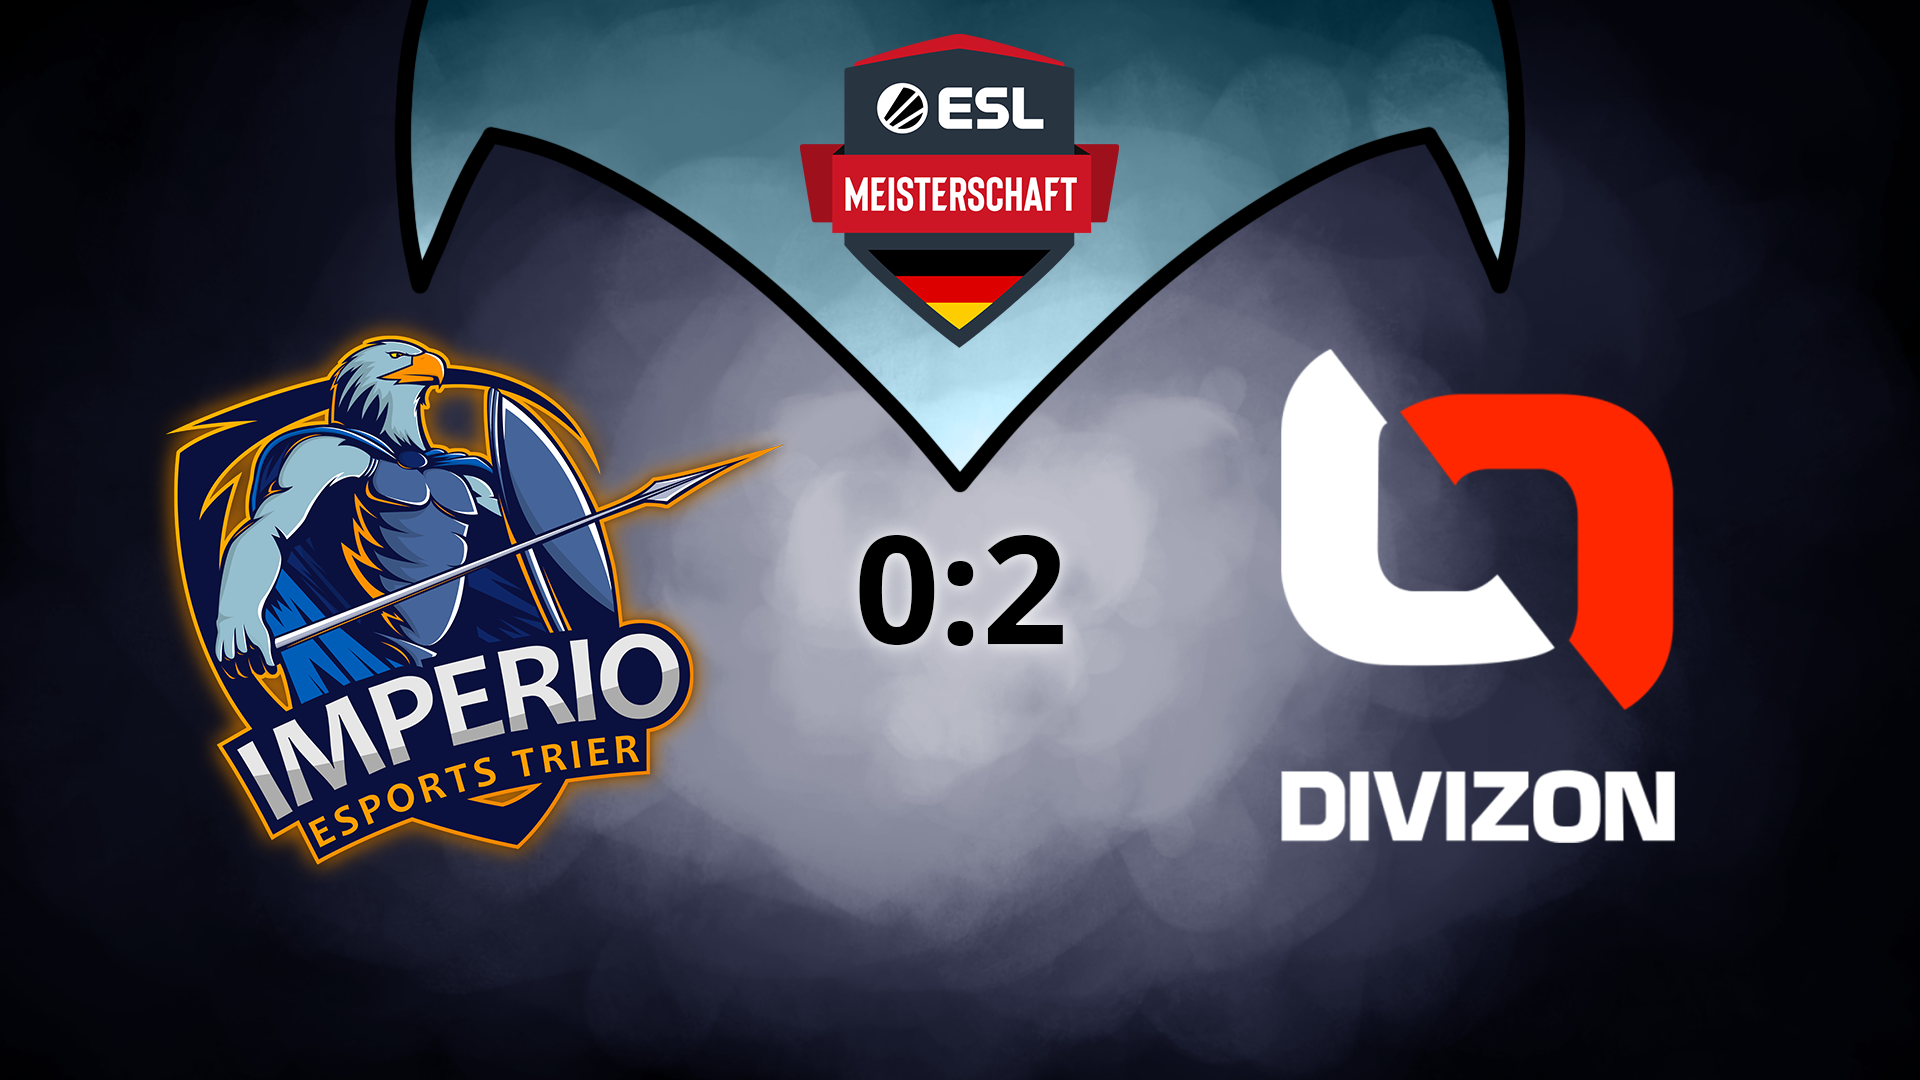 ESLM 2019 Summersplit vs DIVIZON